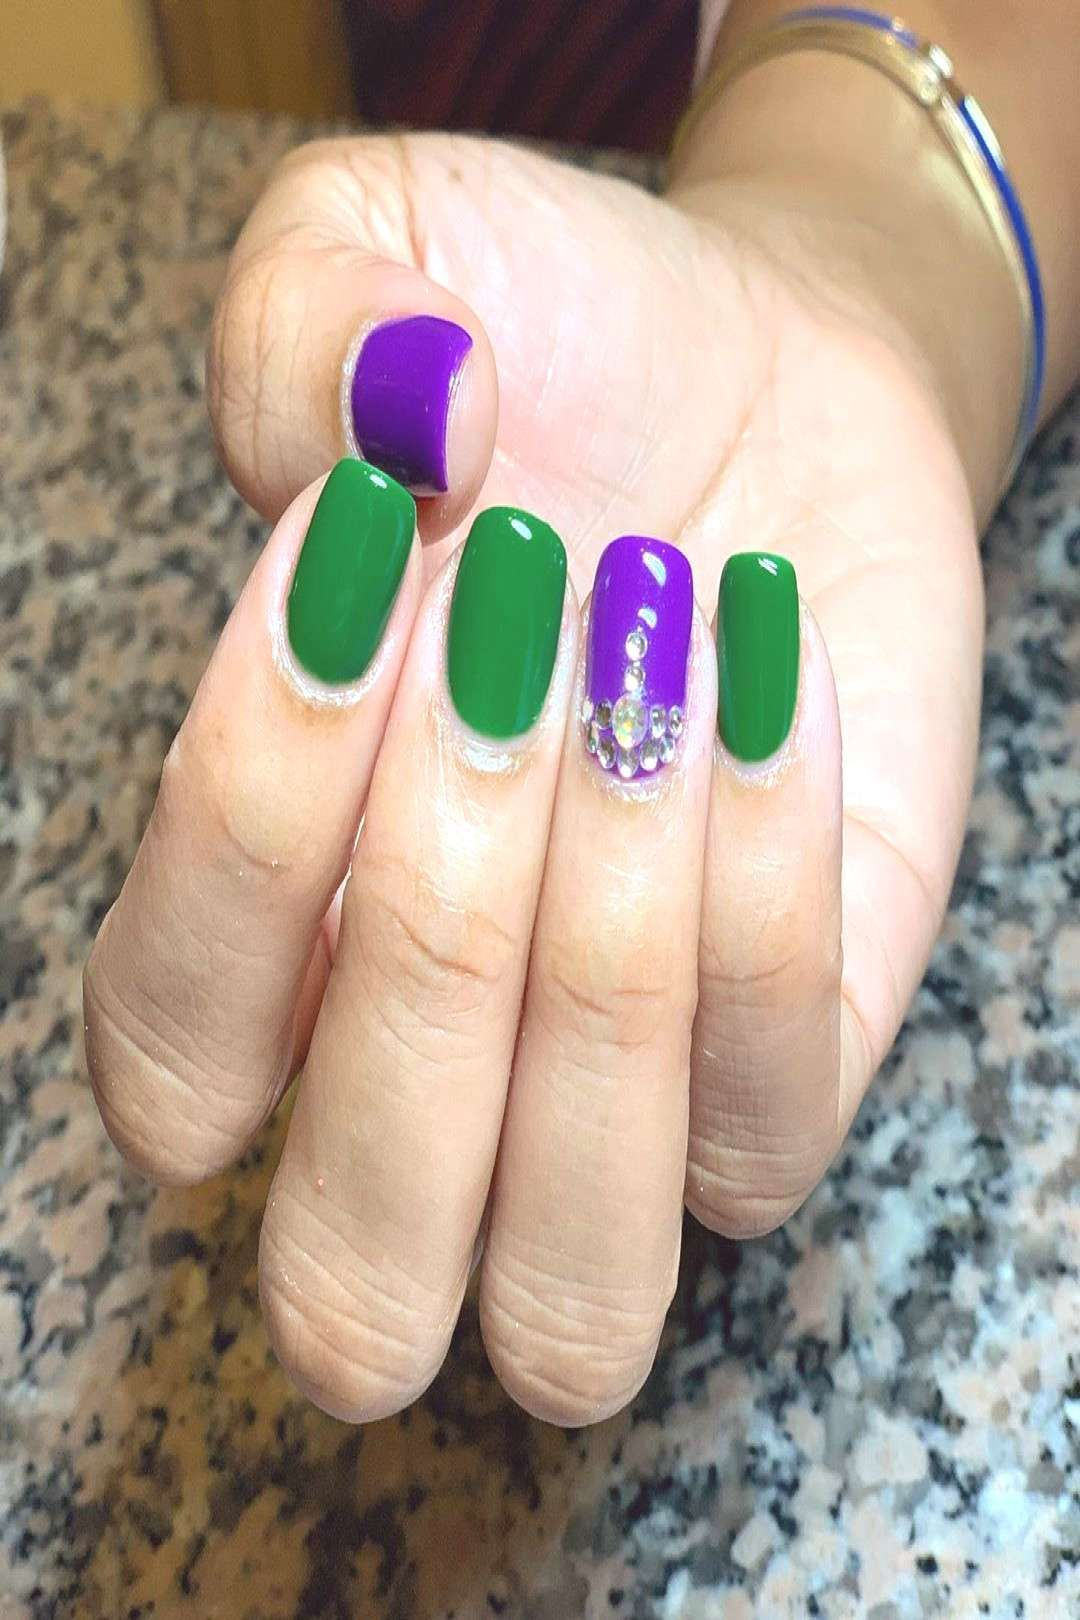 #houstonnails #jennytnails #solarnails #gelcolor #shellac #closeup #megans #people #more #one #and #or #jennytnails Megan's Gelcolor #houstonnails #shellac #solarnails You can find Wedding nails and more on ou...